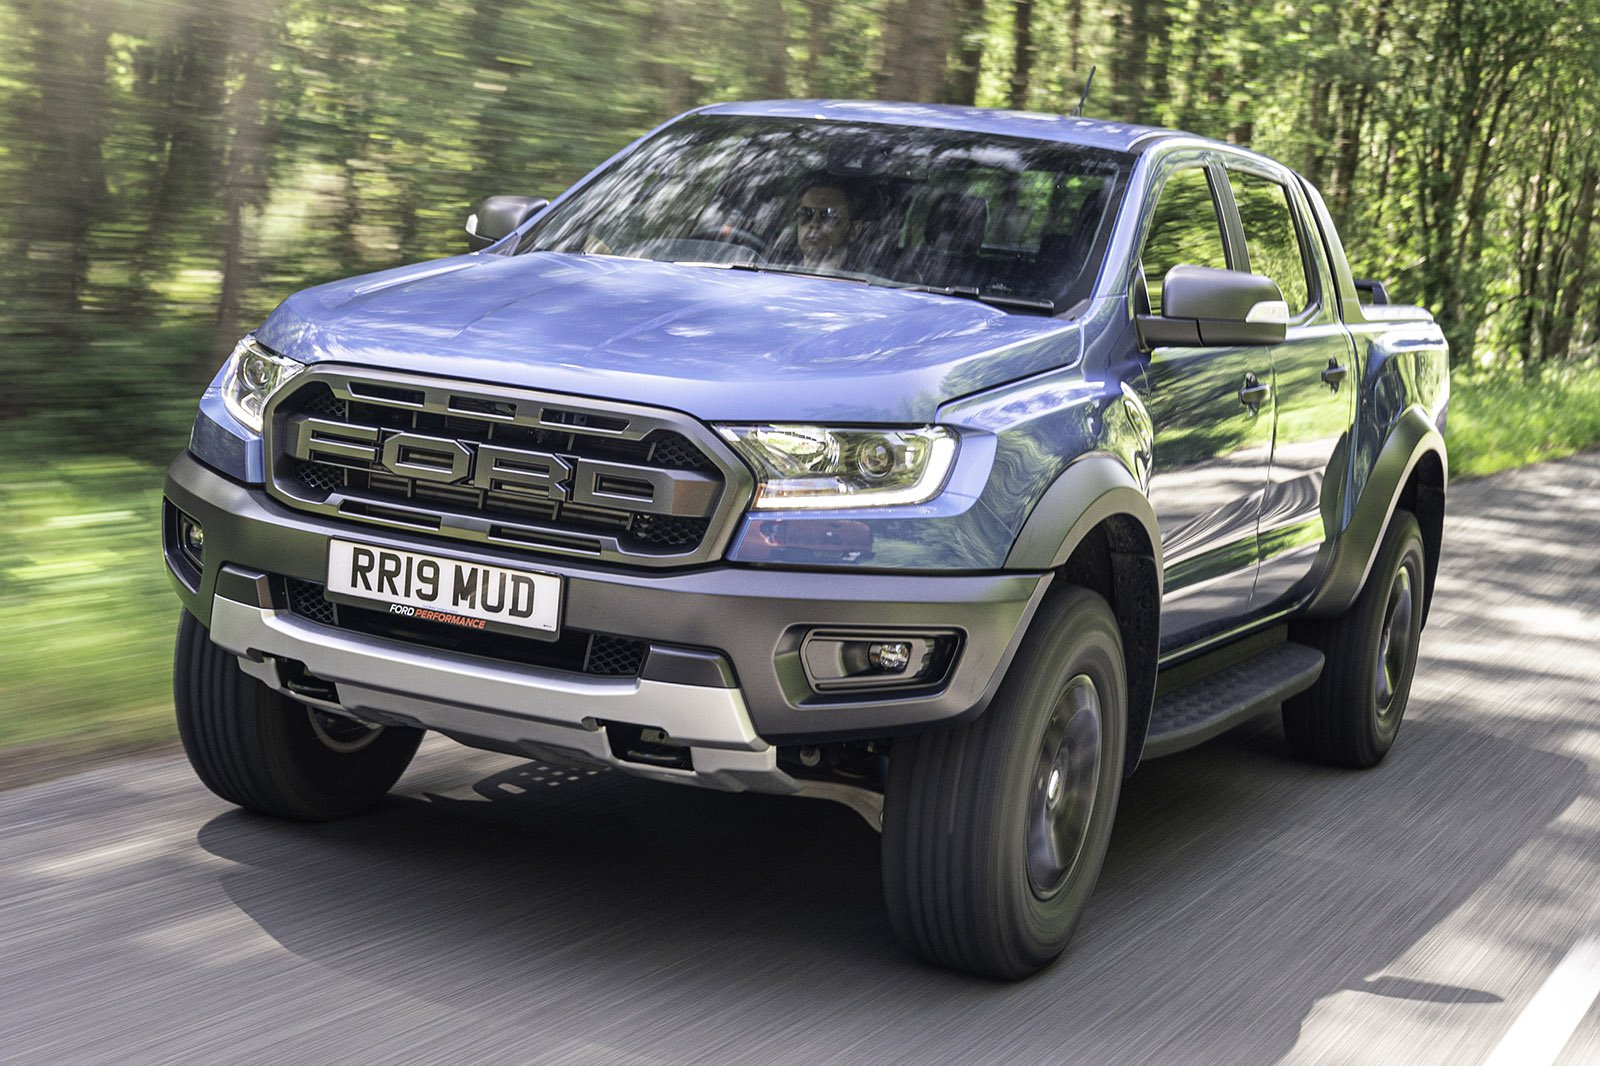 2019 Ford Ranger Specs And Release Date | Upcoming New Car Release 2020